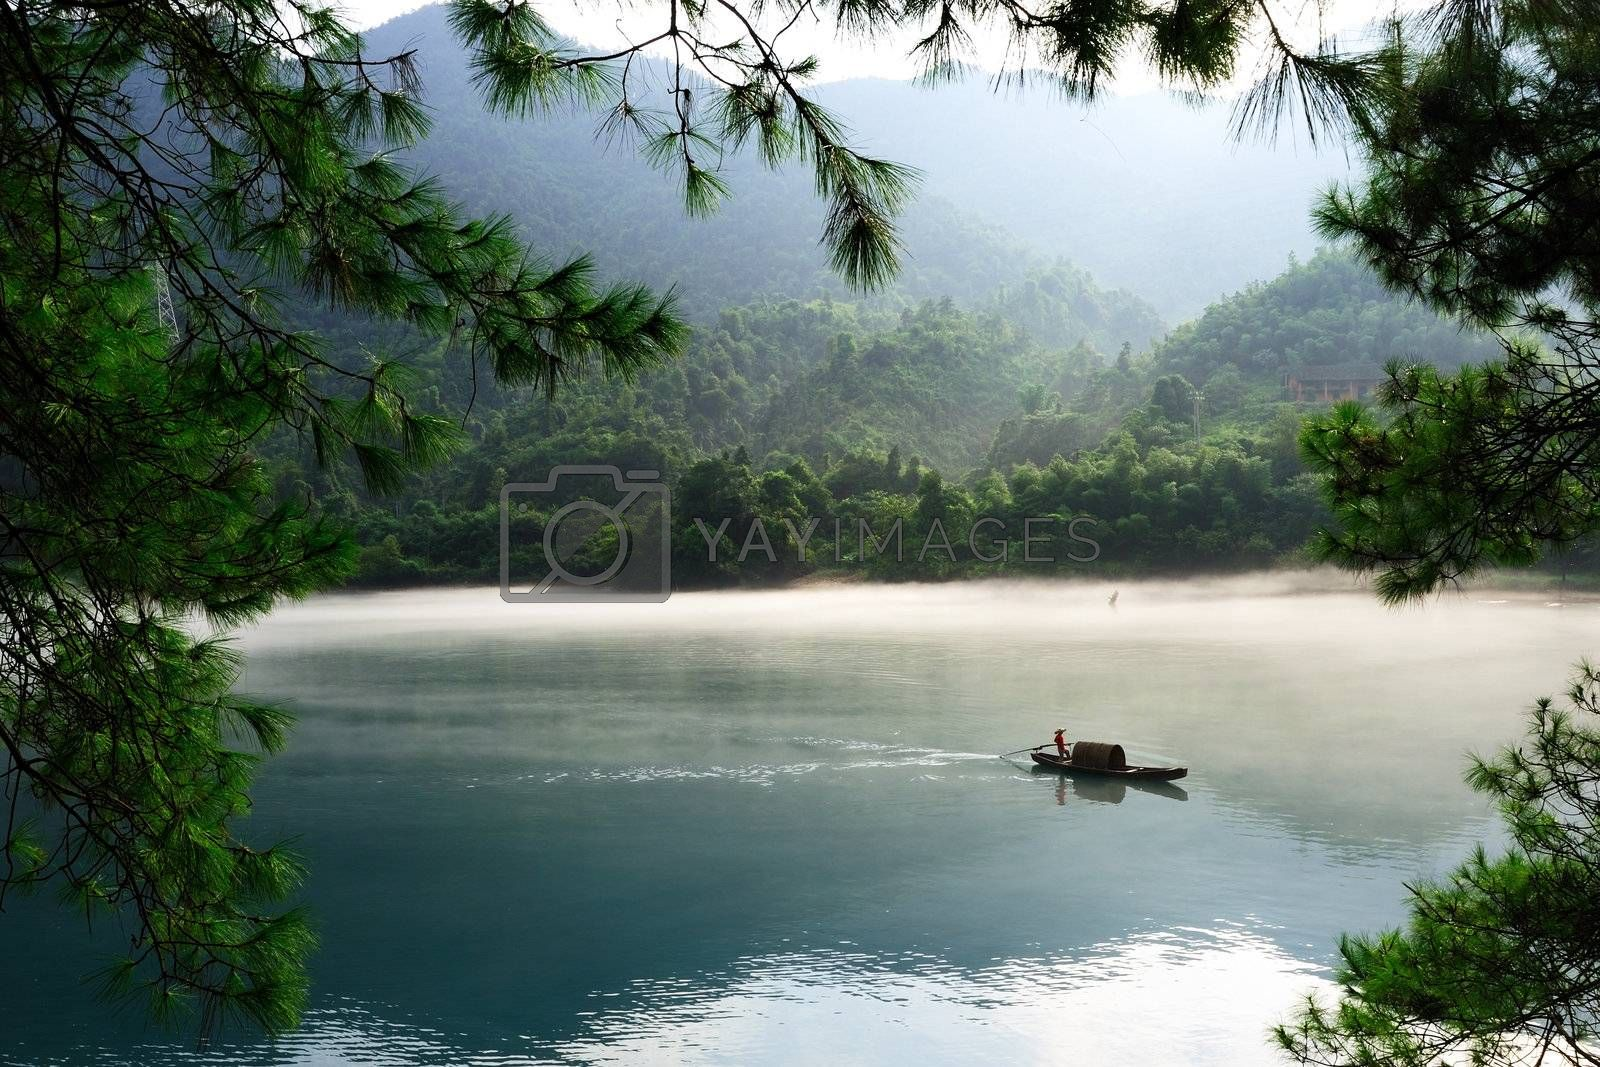 Fishing boat on the foggy river with tree branch as the foreground, in hunan province of China